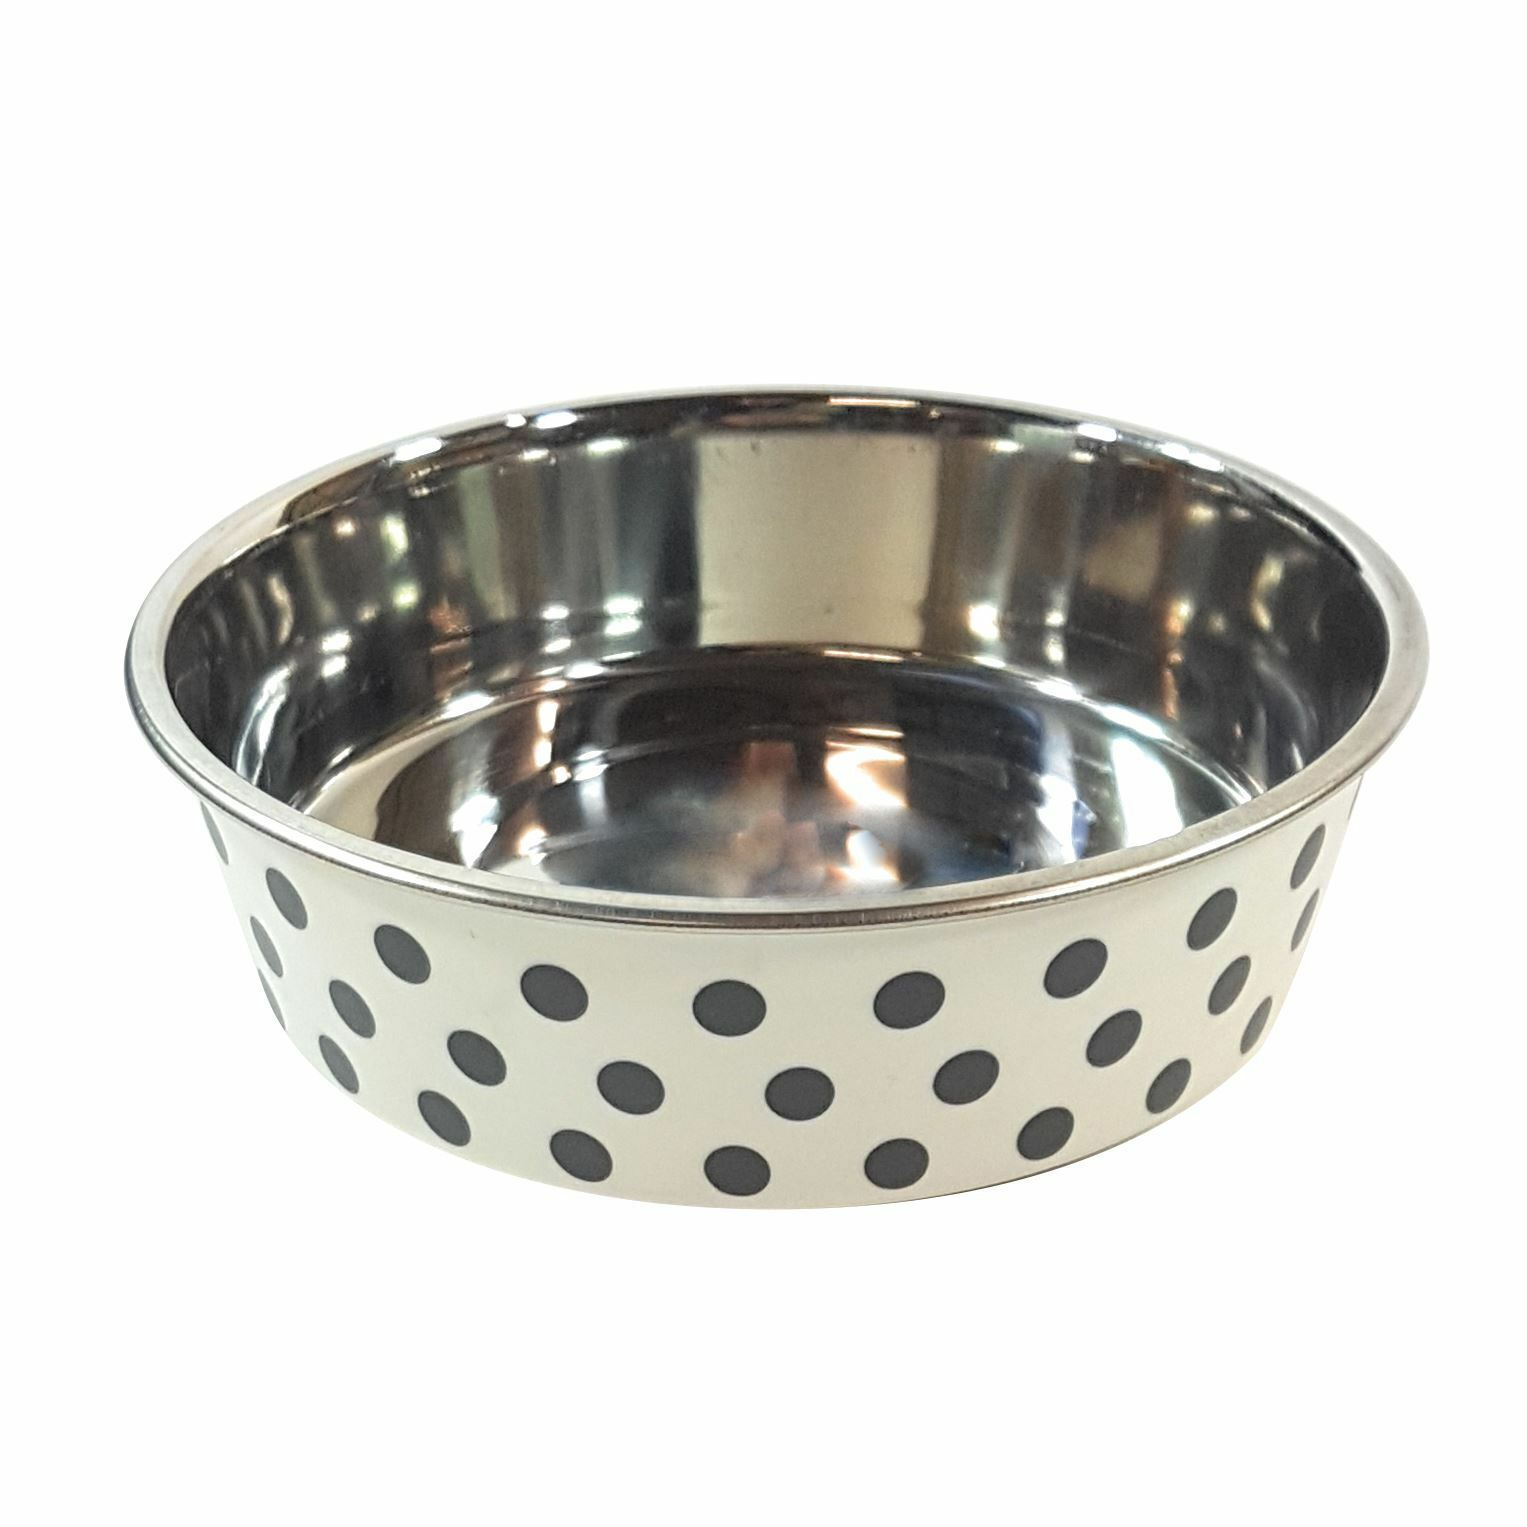 4 X LARGE STAINLESS STEEL RUBBER POLKA DOT FOOD WATER DOG PET BOWL